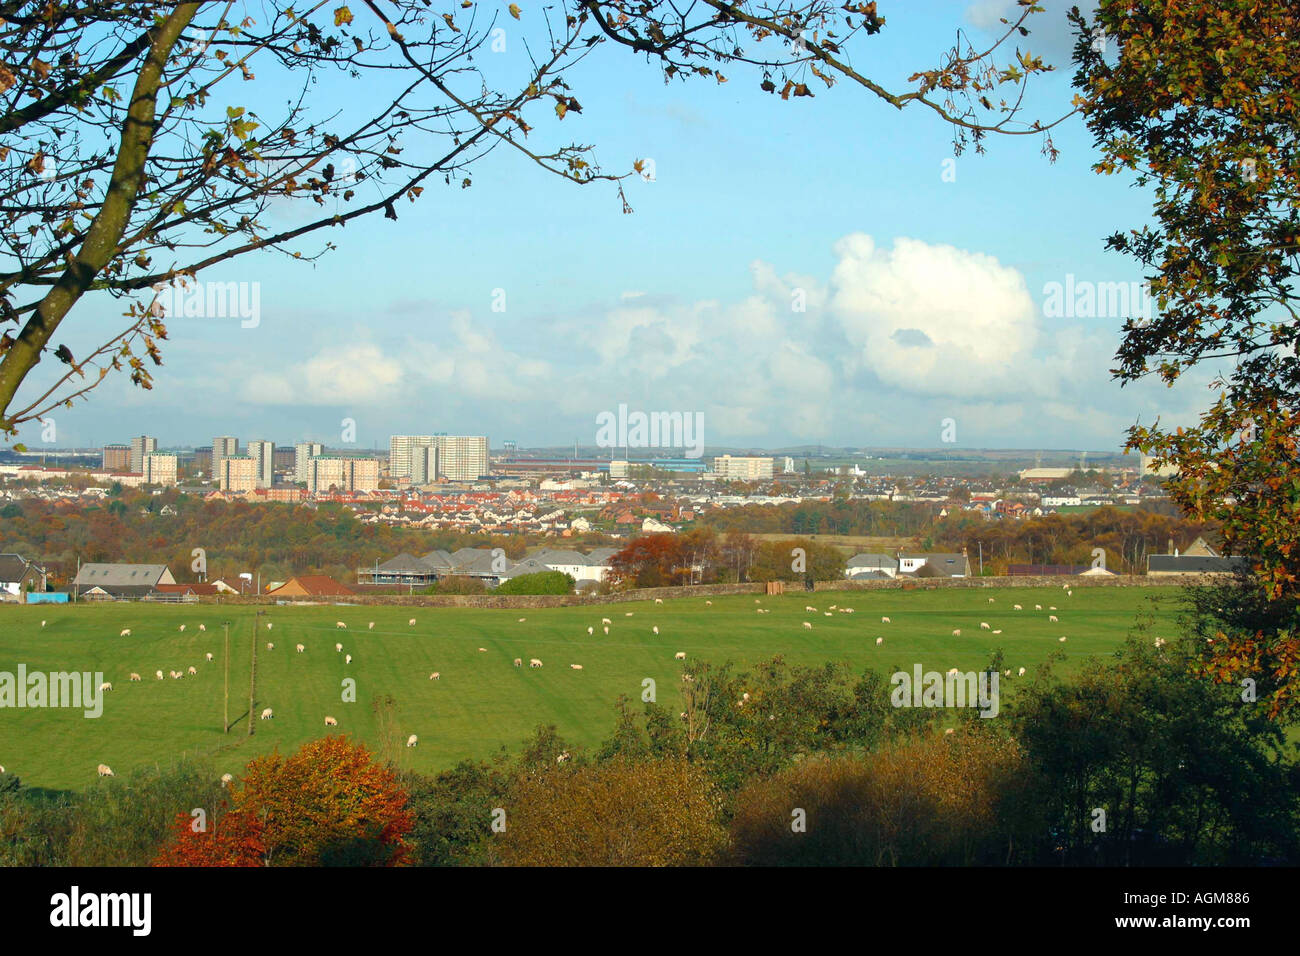 Motherwell Strathclyde Central Scotland - Stock Image